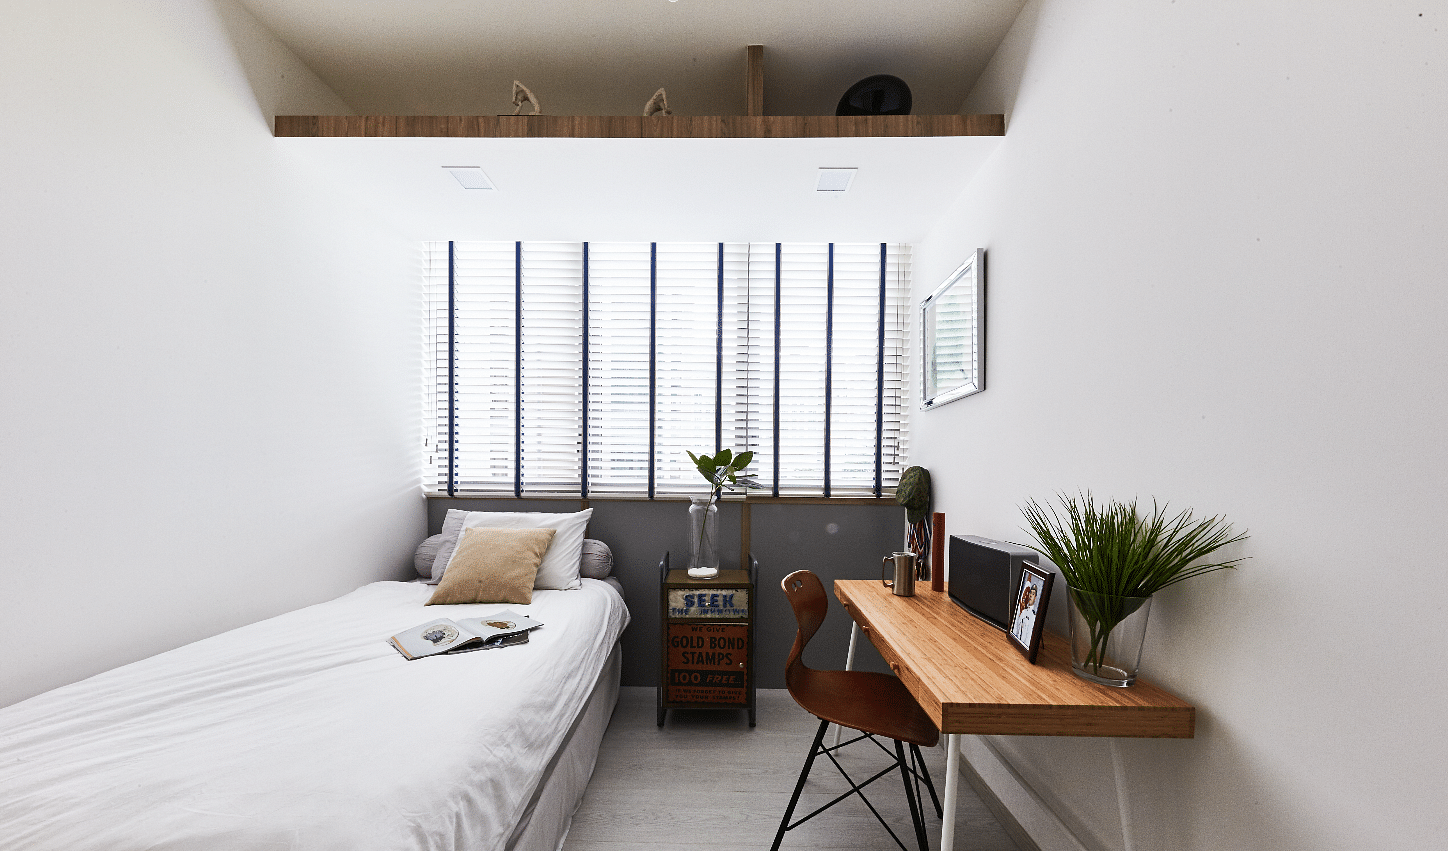 House Tour: Lots Of Extra Storage And Quirky Furniture In